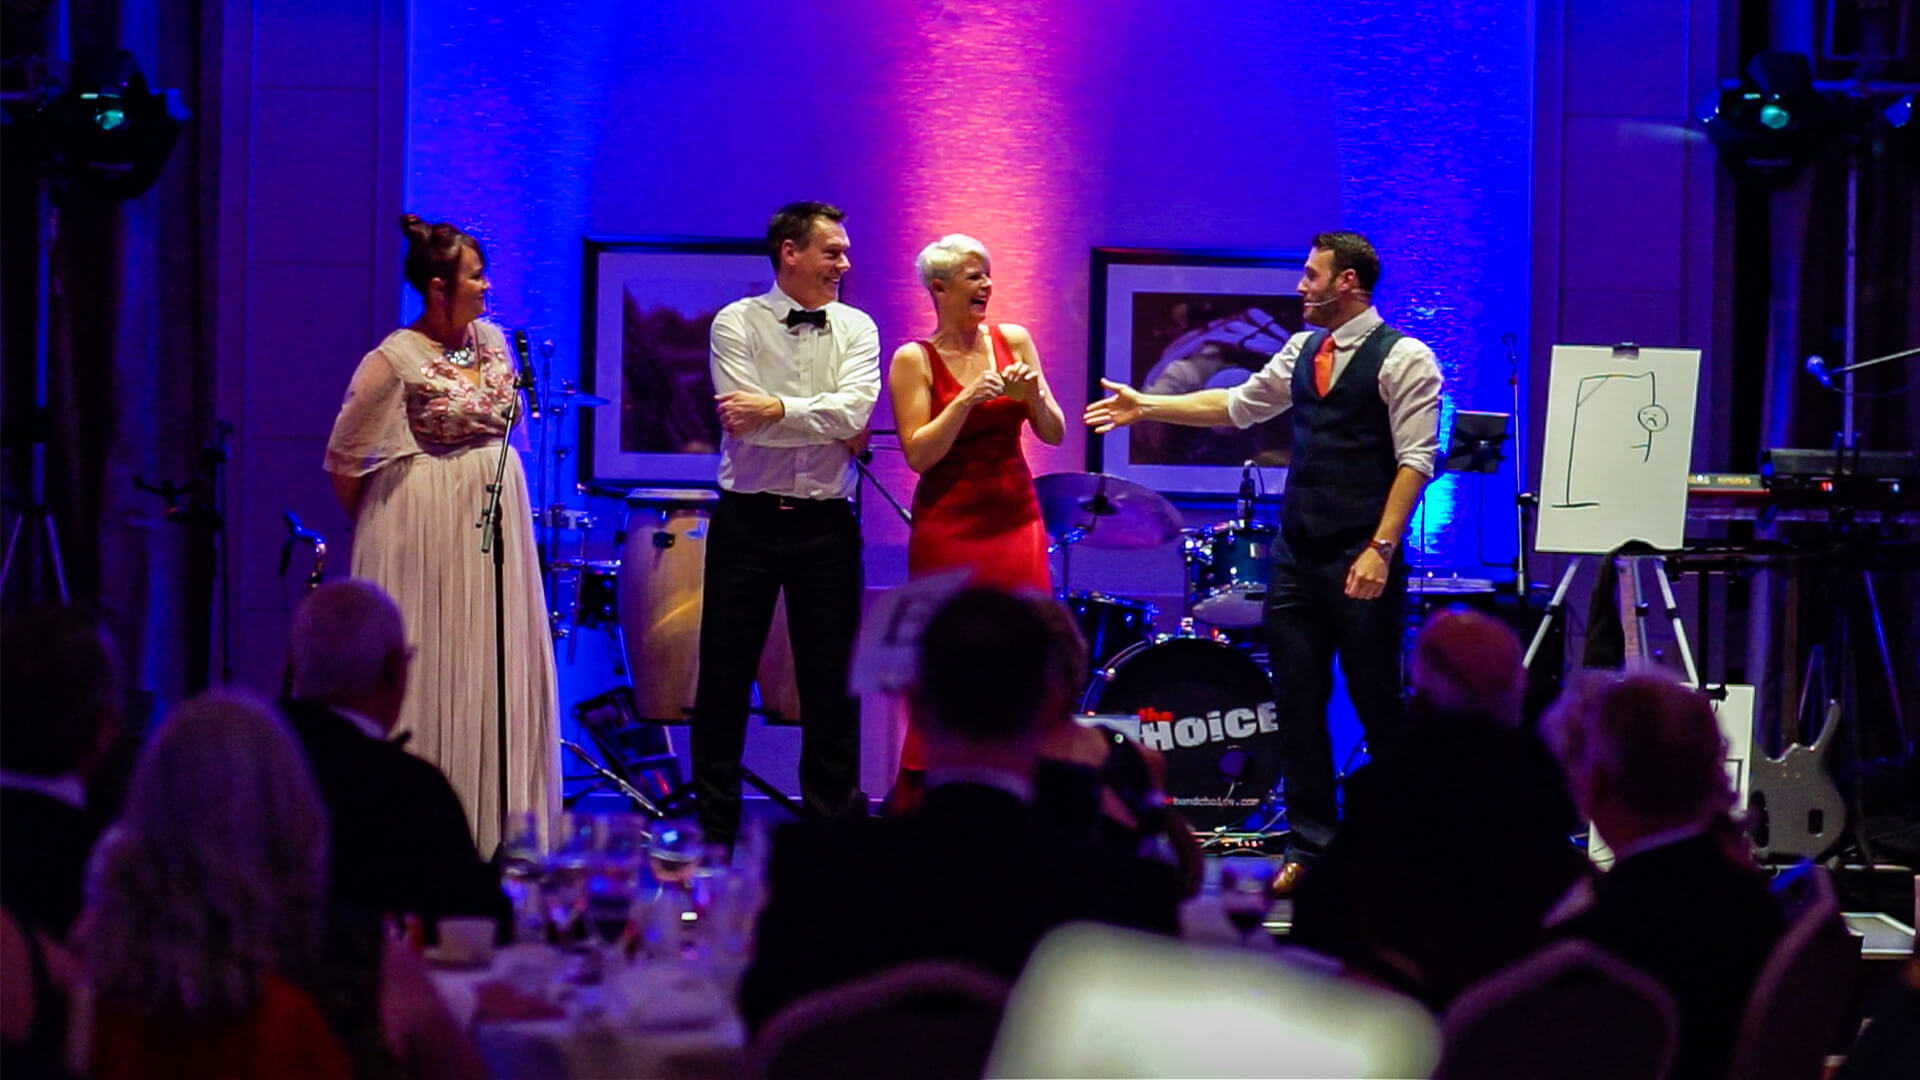 Corporate event entertainment Mind reader and hypnotist Aaron Calvert on stage with three amazed guests